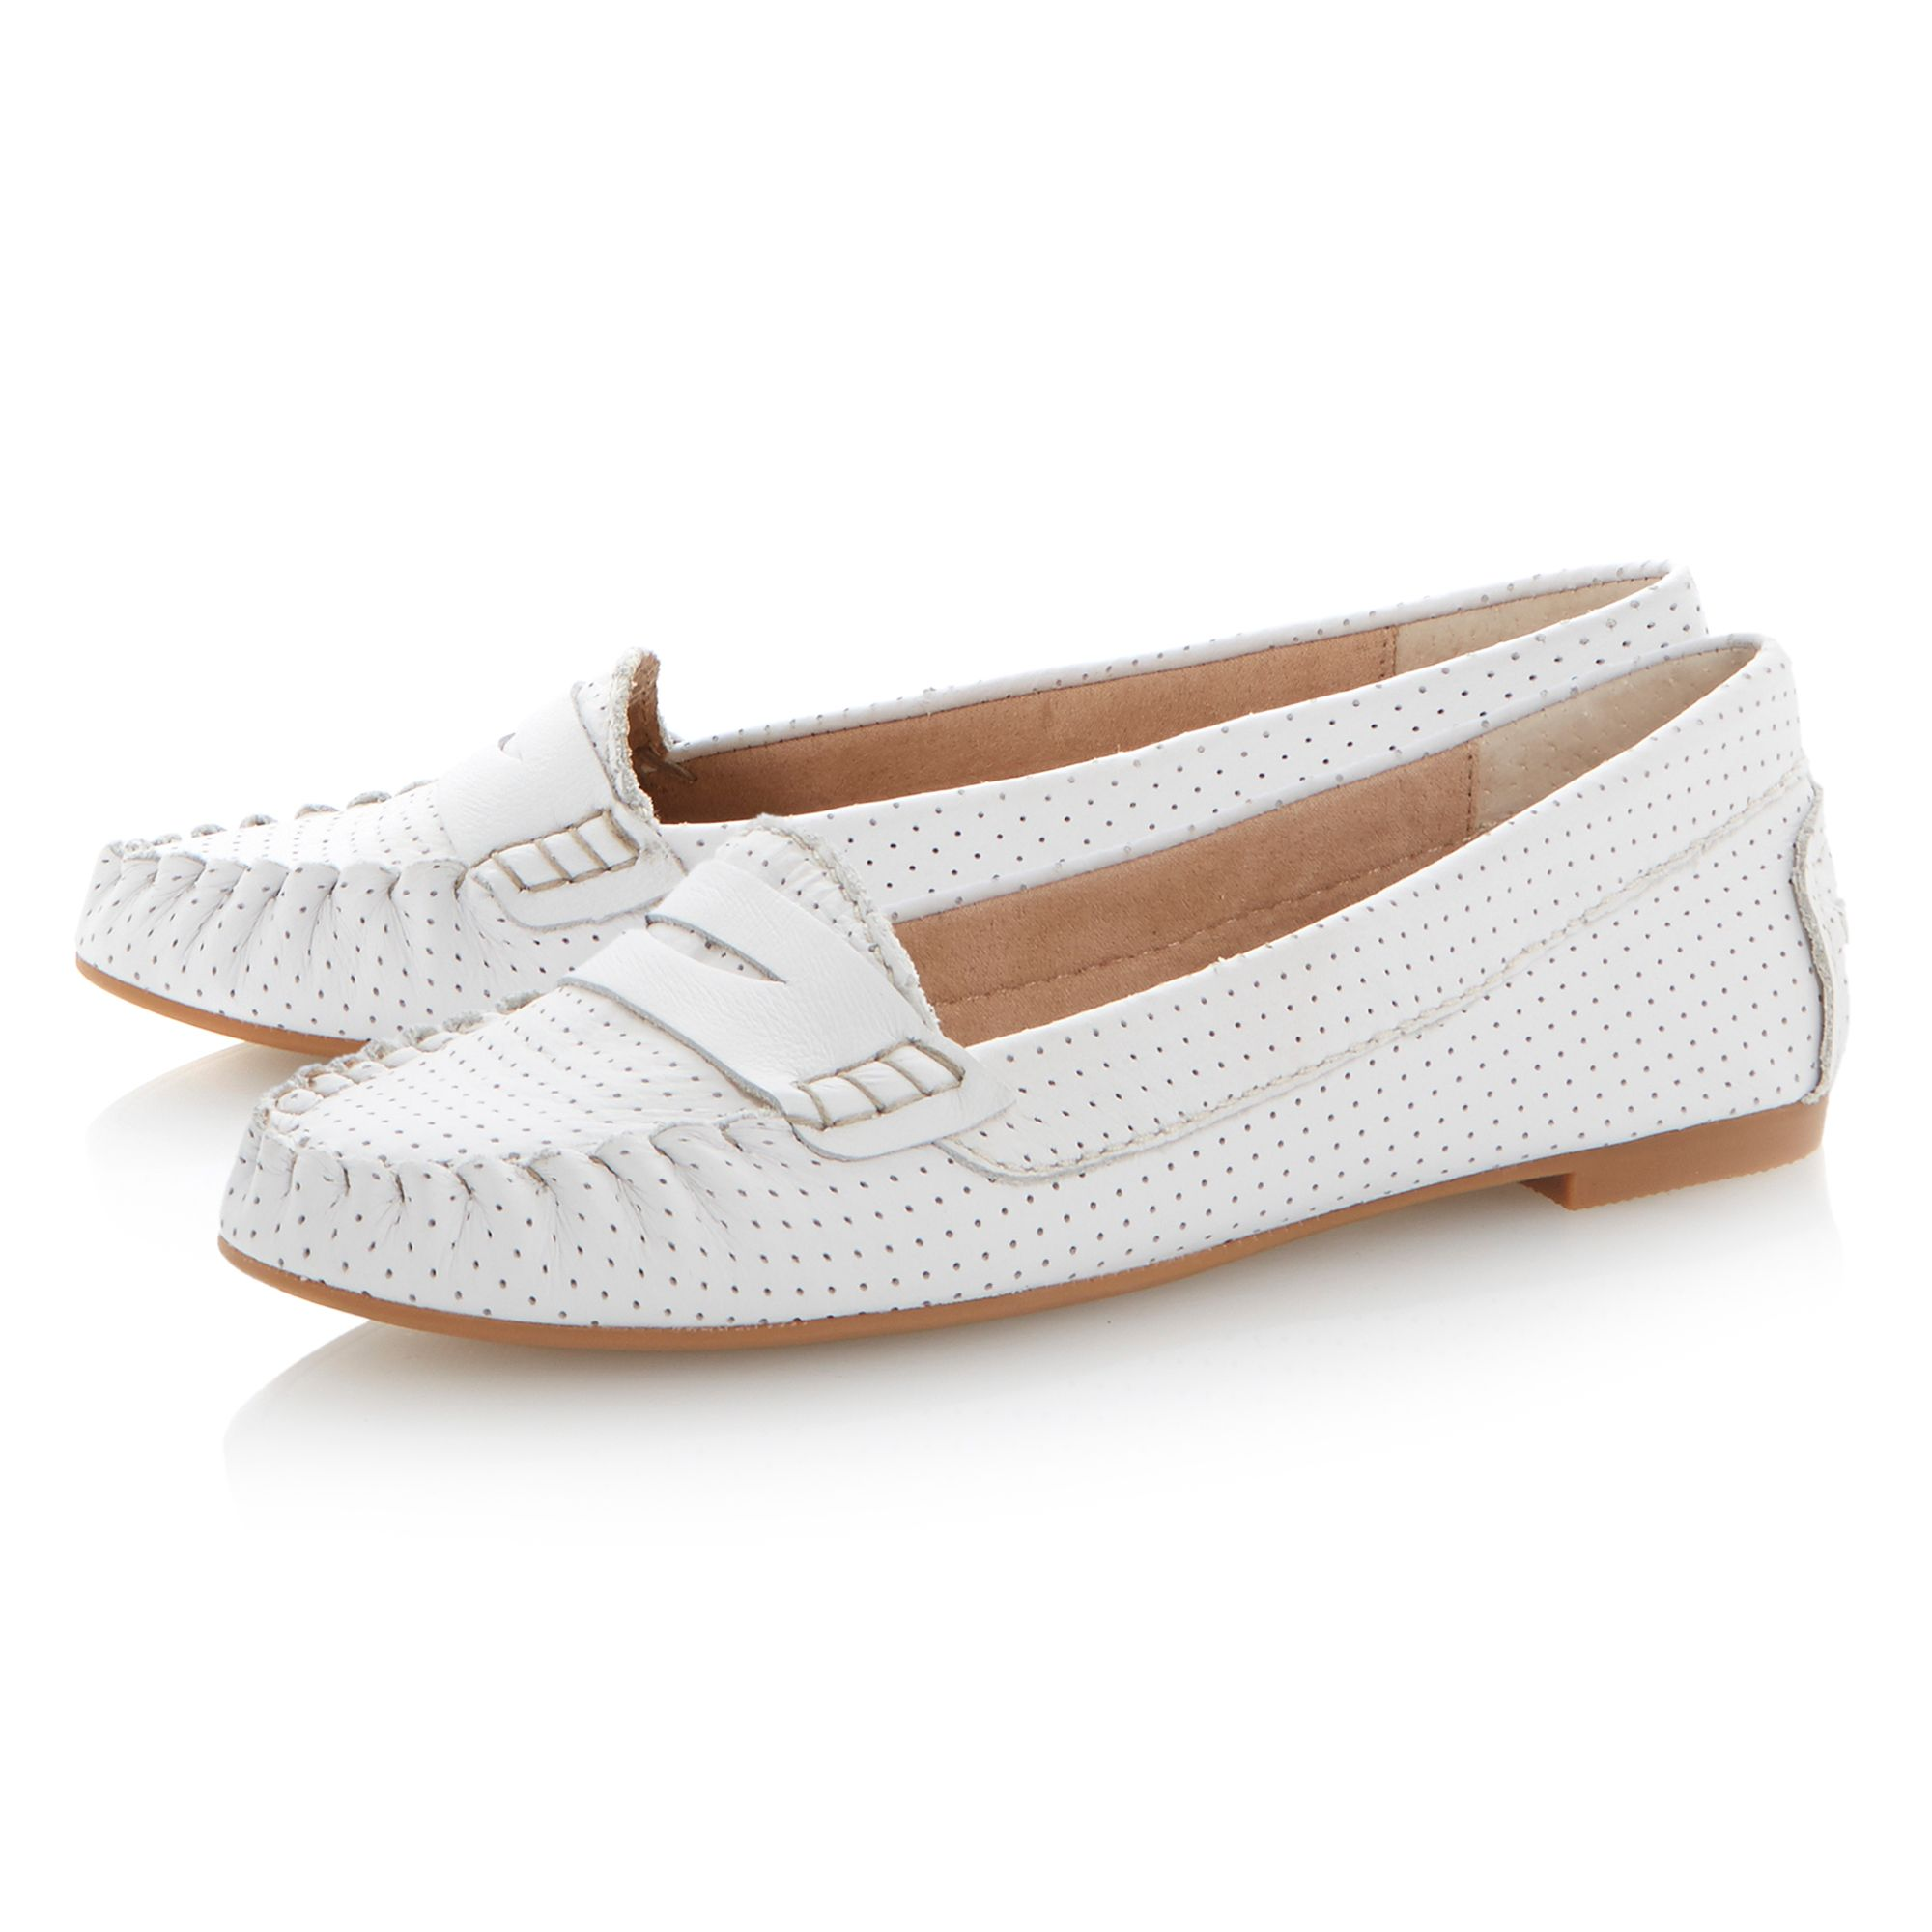 Murphey saddle flat loafer shoes